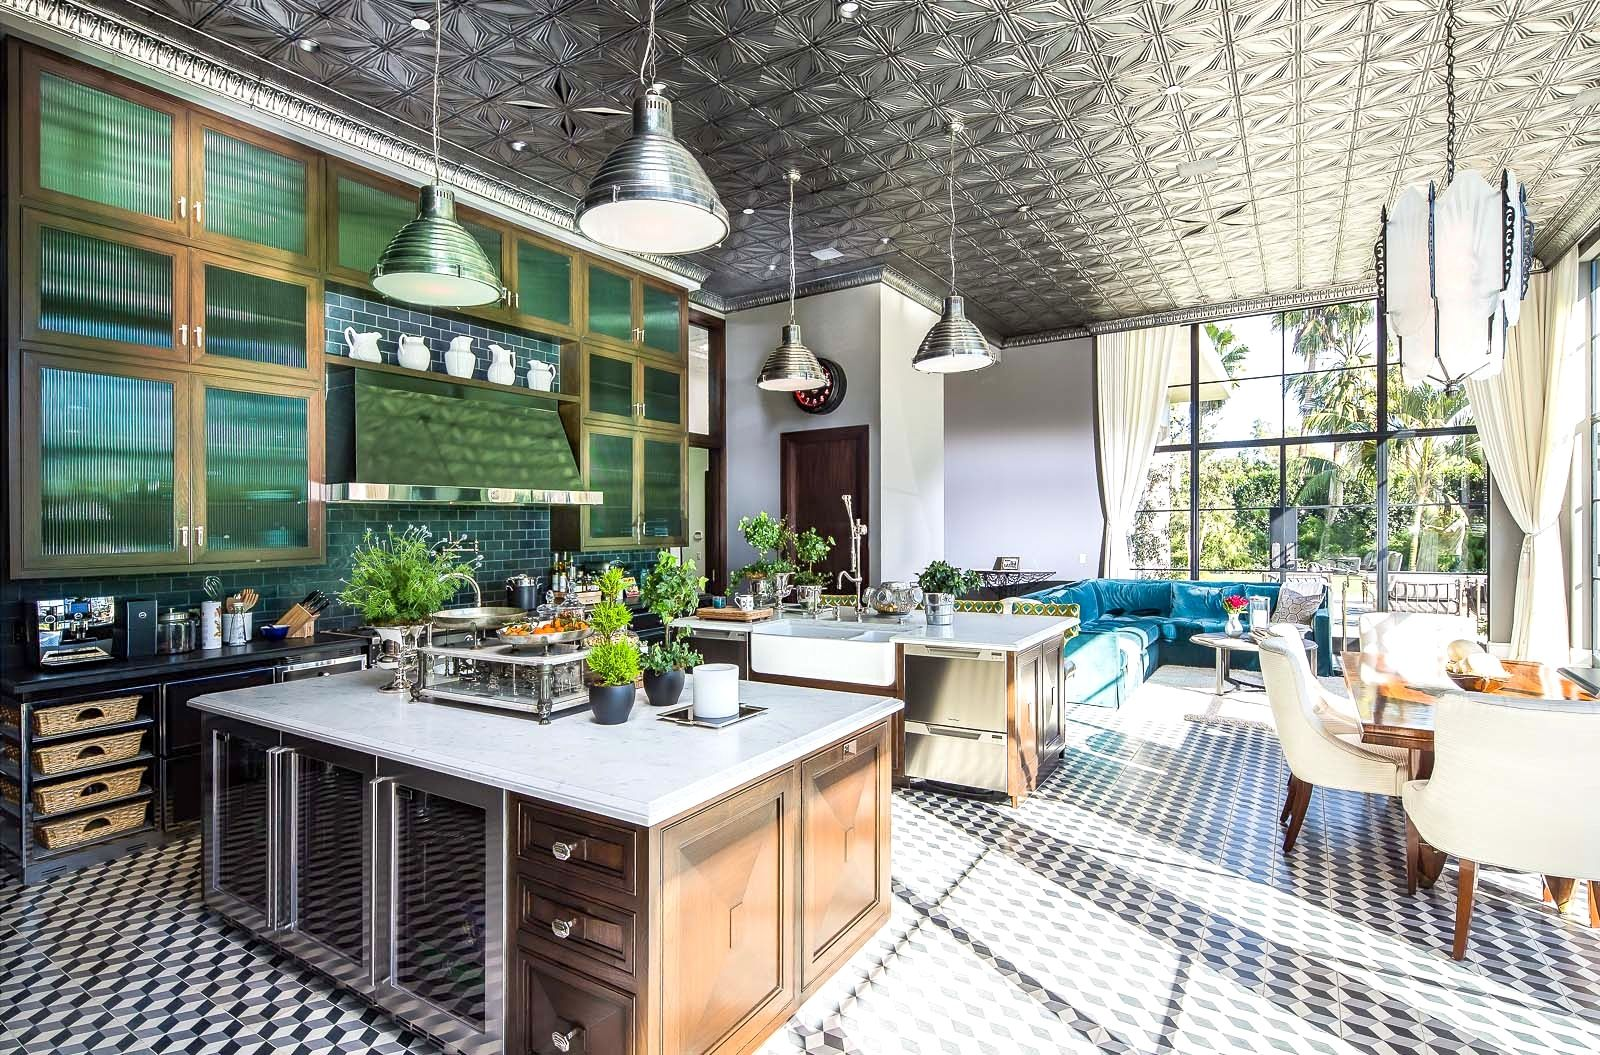 The ceiling in this room is amazing build gothic haunted house a huge gourmet kitchen has pressed tin ceilings cement tile floors in a graphic pattern large pendant lights a breakfast nook and a sitting area dailygadgetfo Image collections